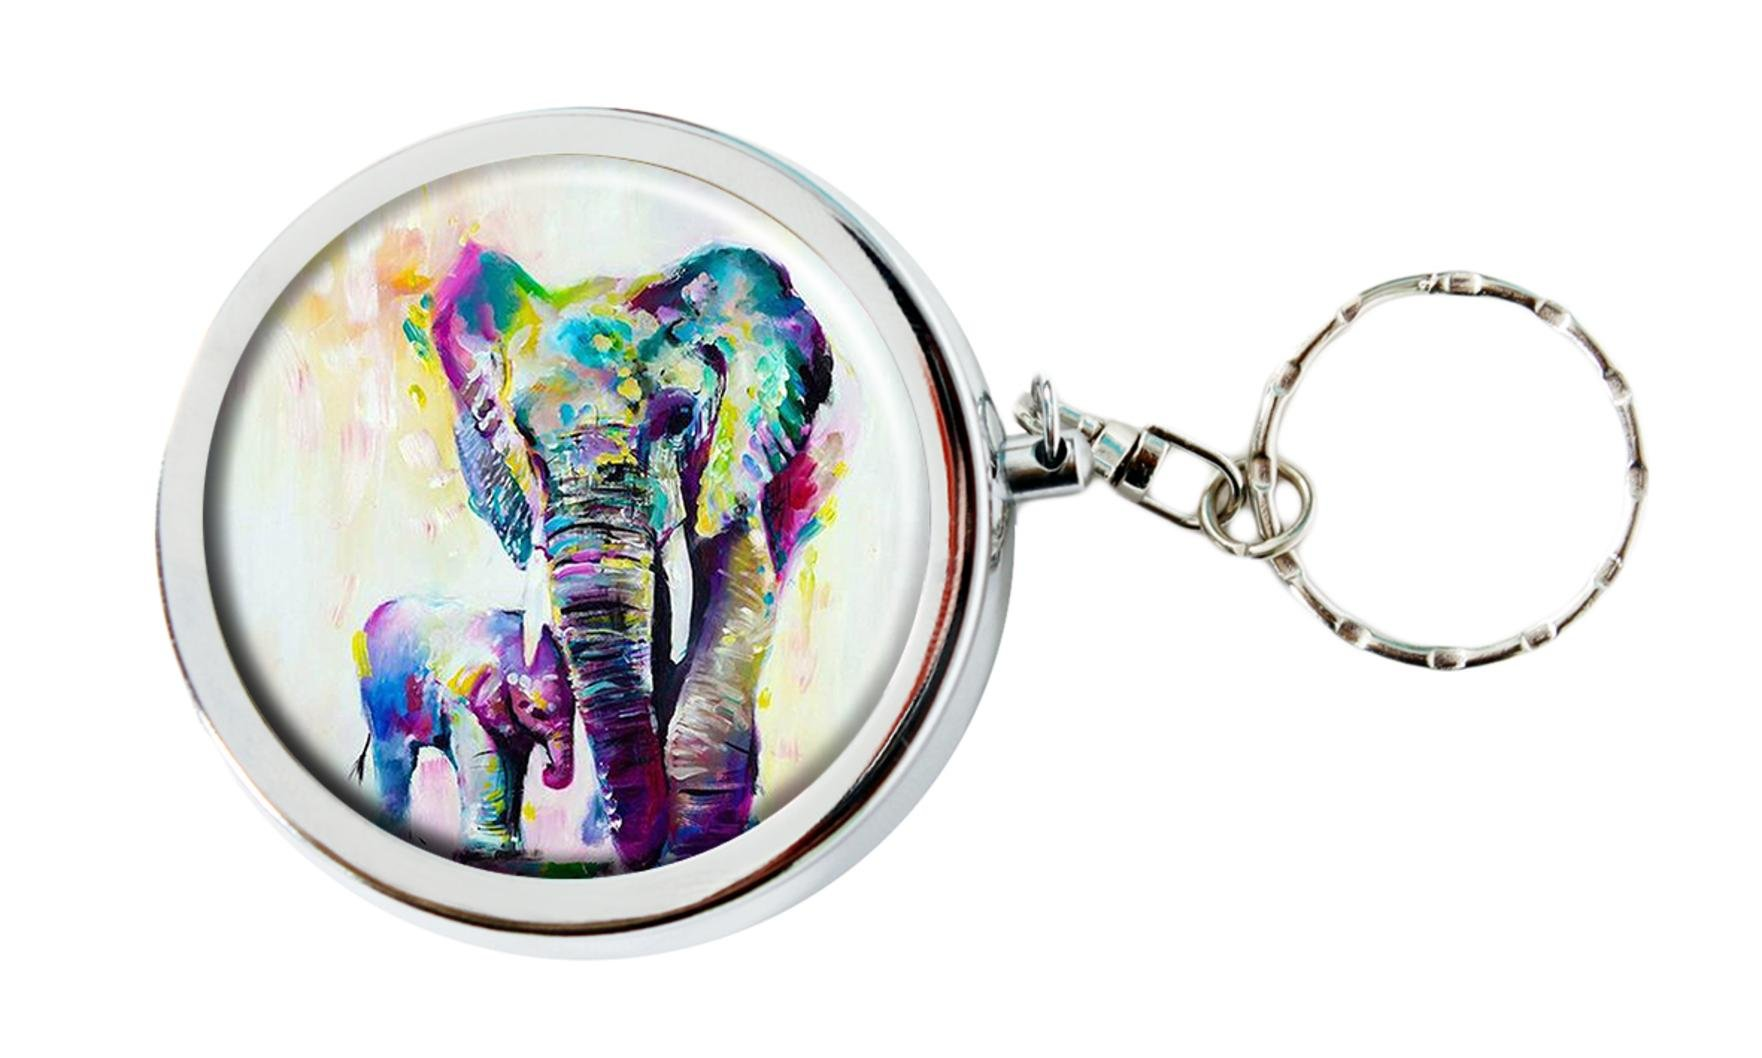 Personalized Custom Portable Travel Size Pocket Purse Ashtray Stainless Steel Circular Keychain with Cigarette Holder Case (Abstract Aesthetic Elephant)